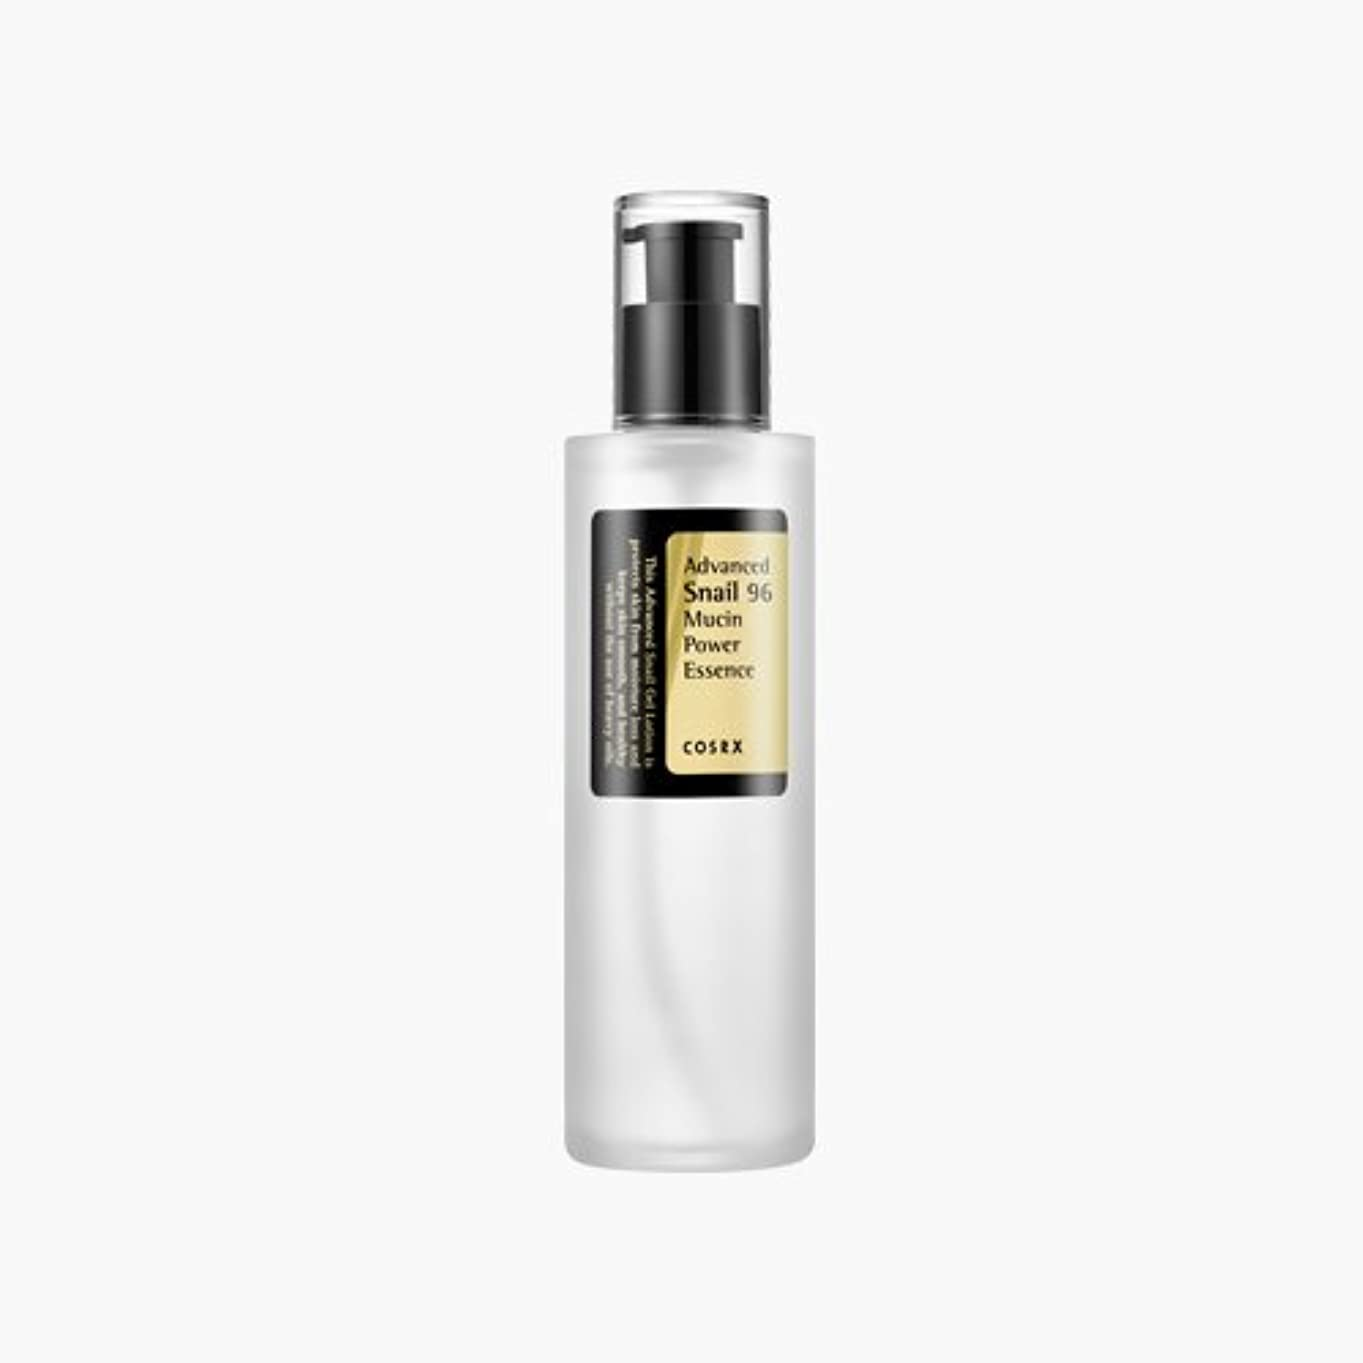 ナイトスポットタイトル変更可能[Cosrx] Advanced Snail 96 Mucin Power Essence 100ml/K-Beauty/Korea Cosmetics